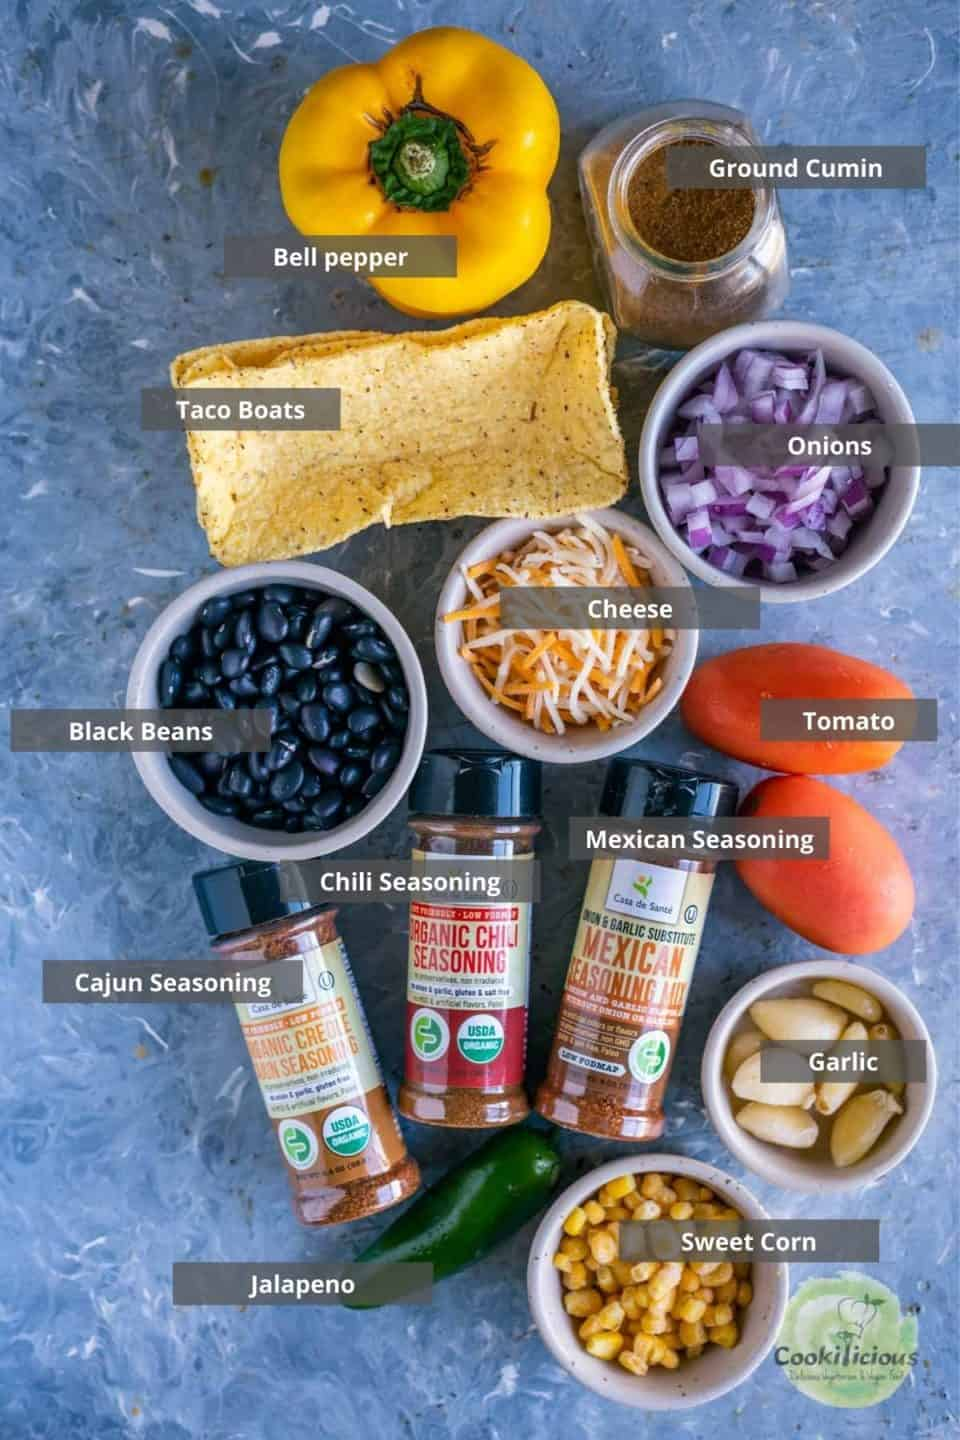 all the ingredients needed to make Instant Pot Black Beans Taco Boats placed on a table with labels on them